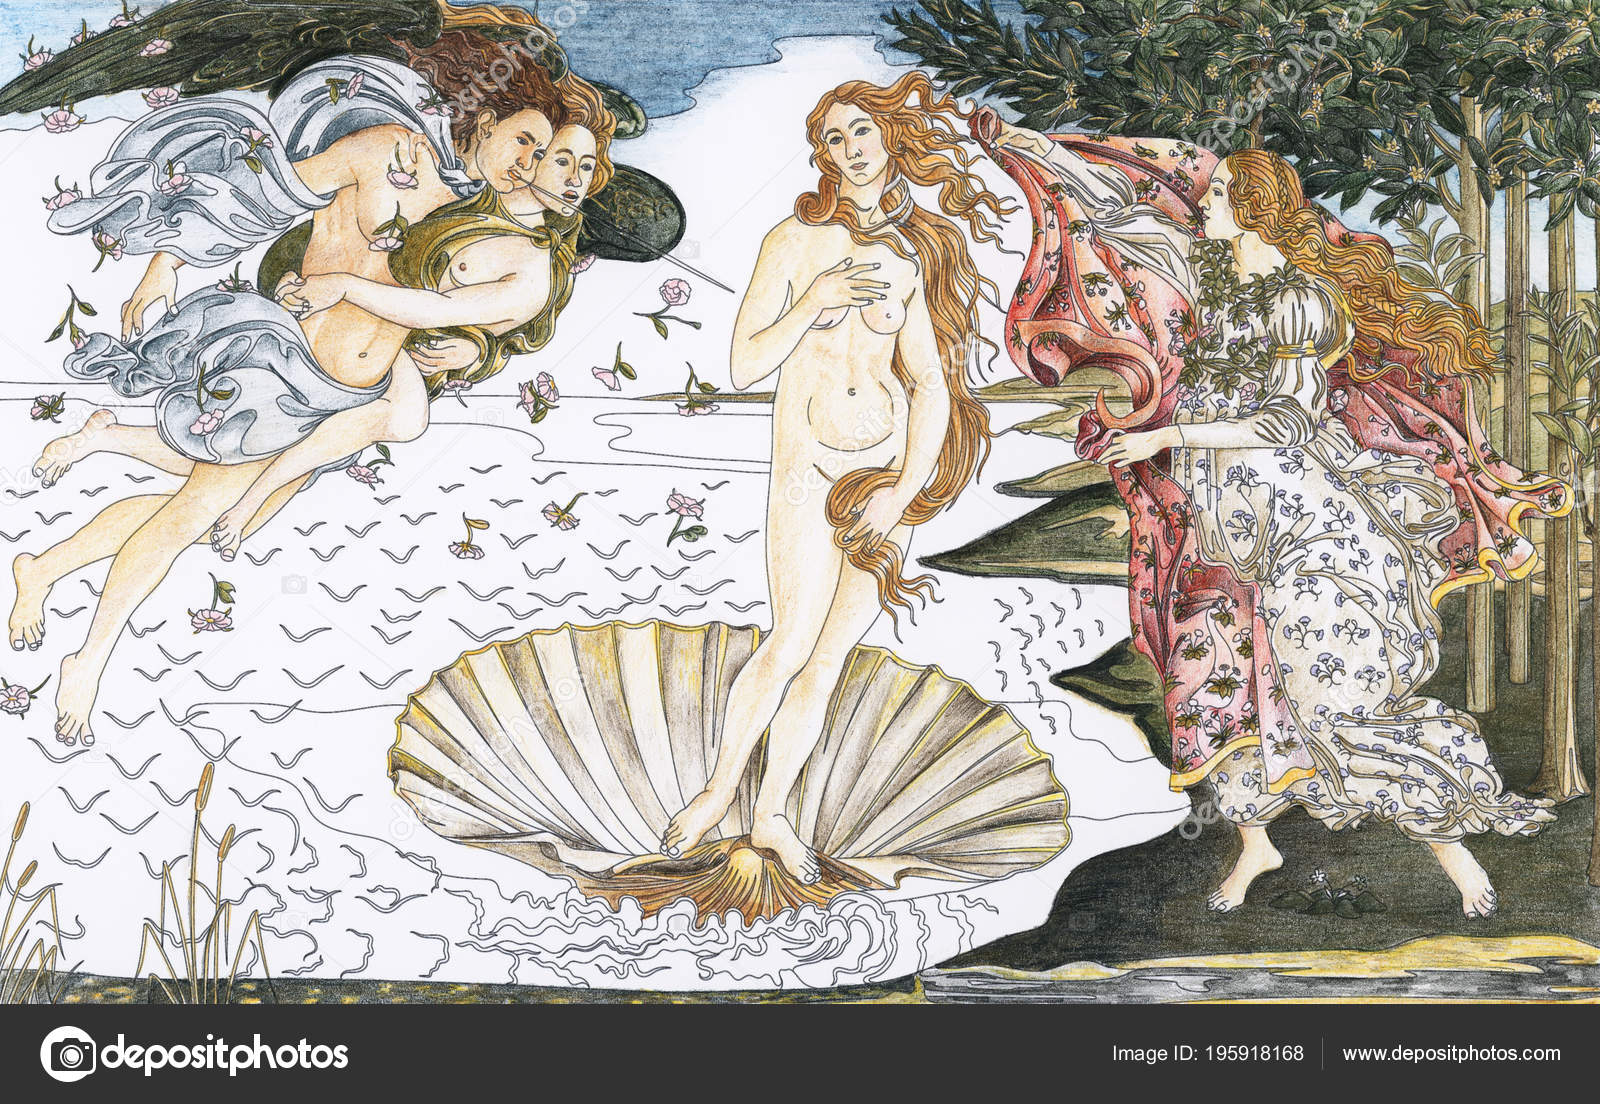 Birth Venus 1483 1485 Sandro Botticelli Adult Coloring Page — Stock Photo